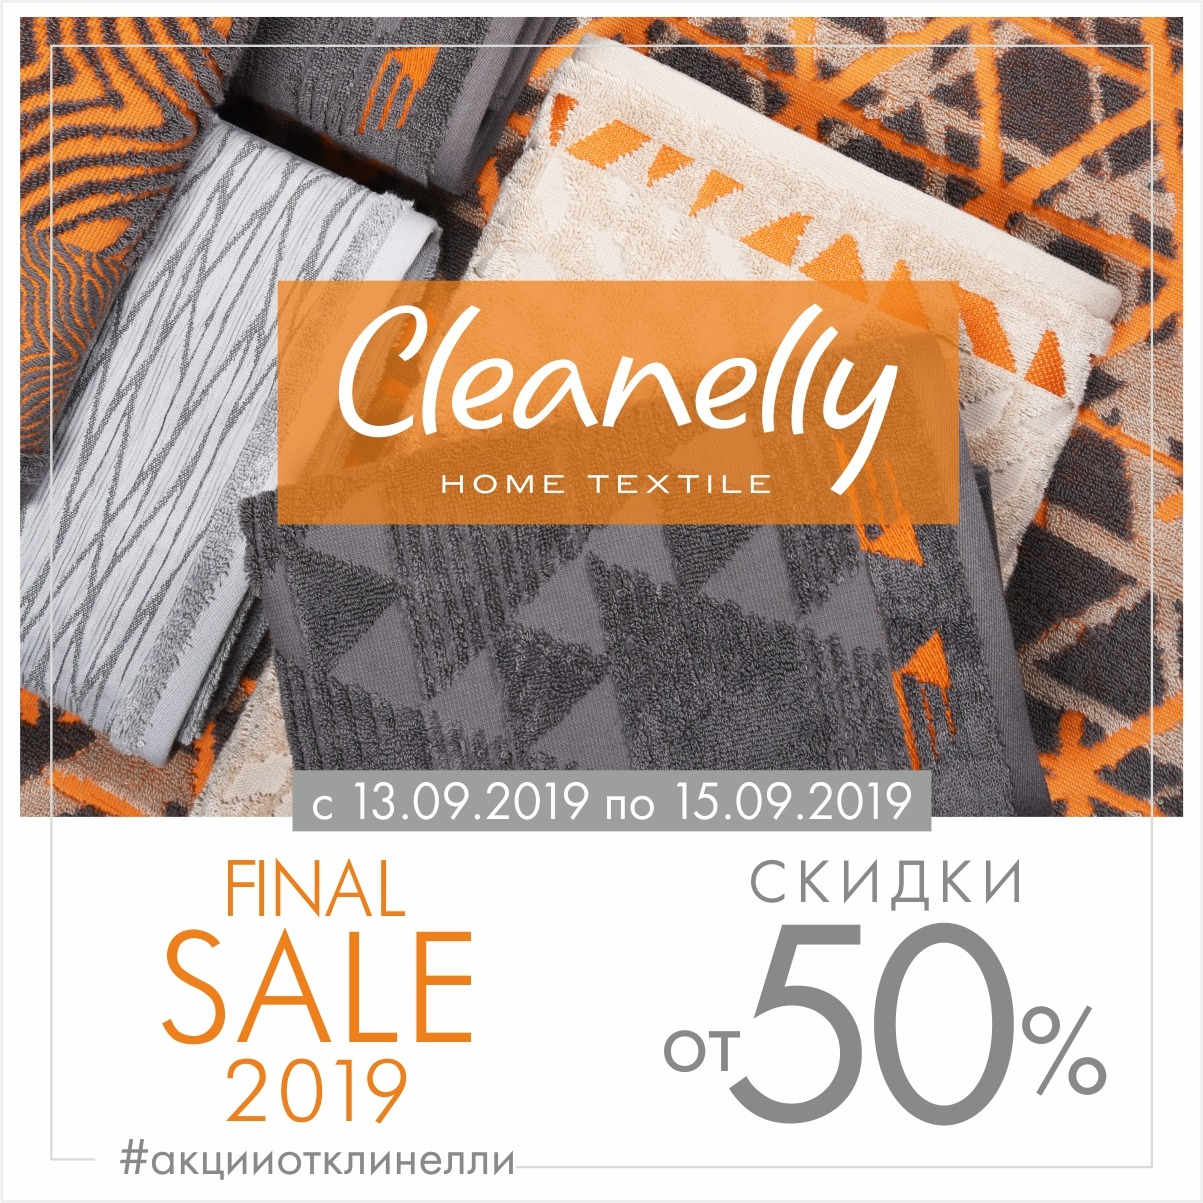 FINAL SALE 2019 в CLEANELLY